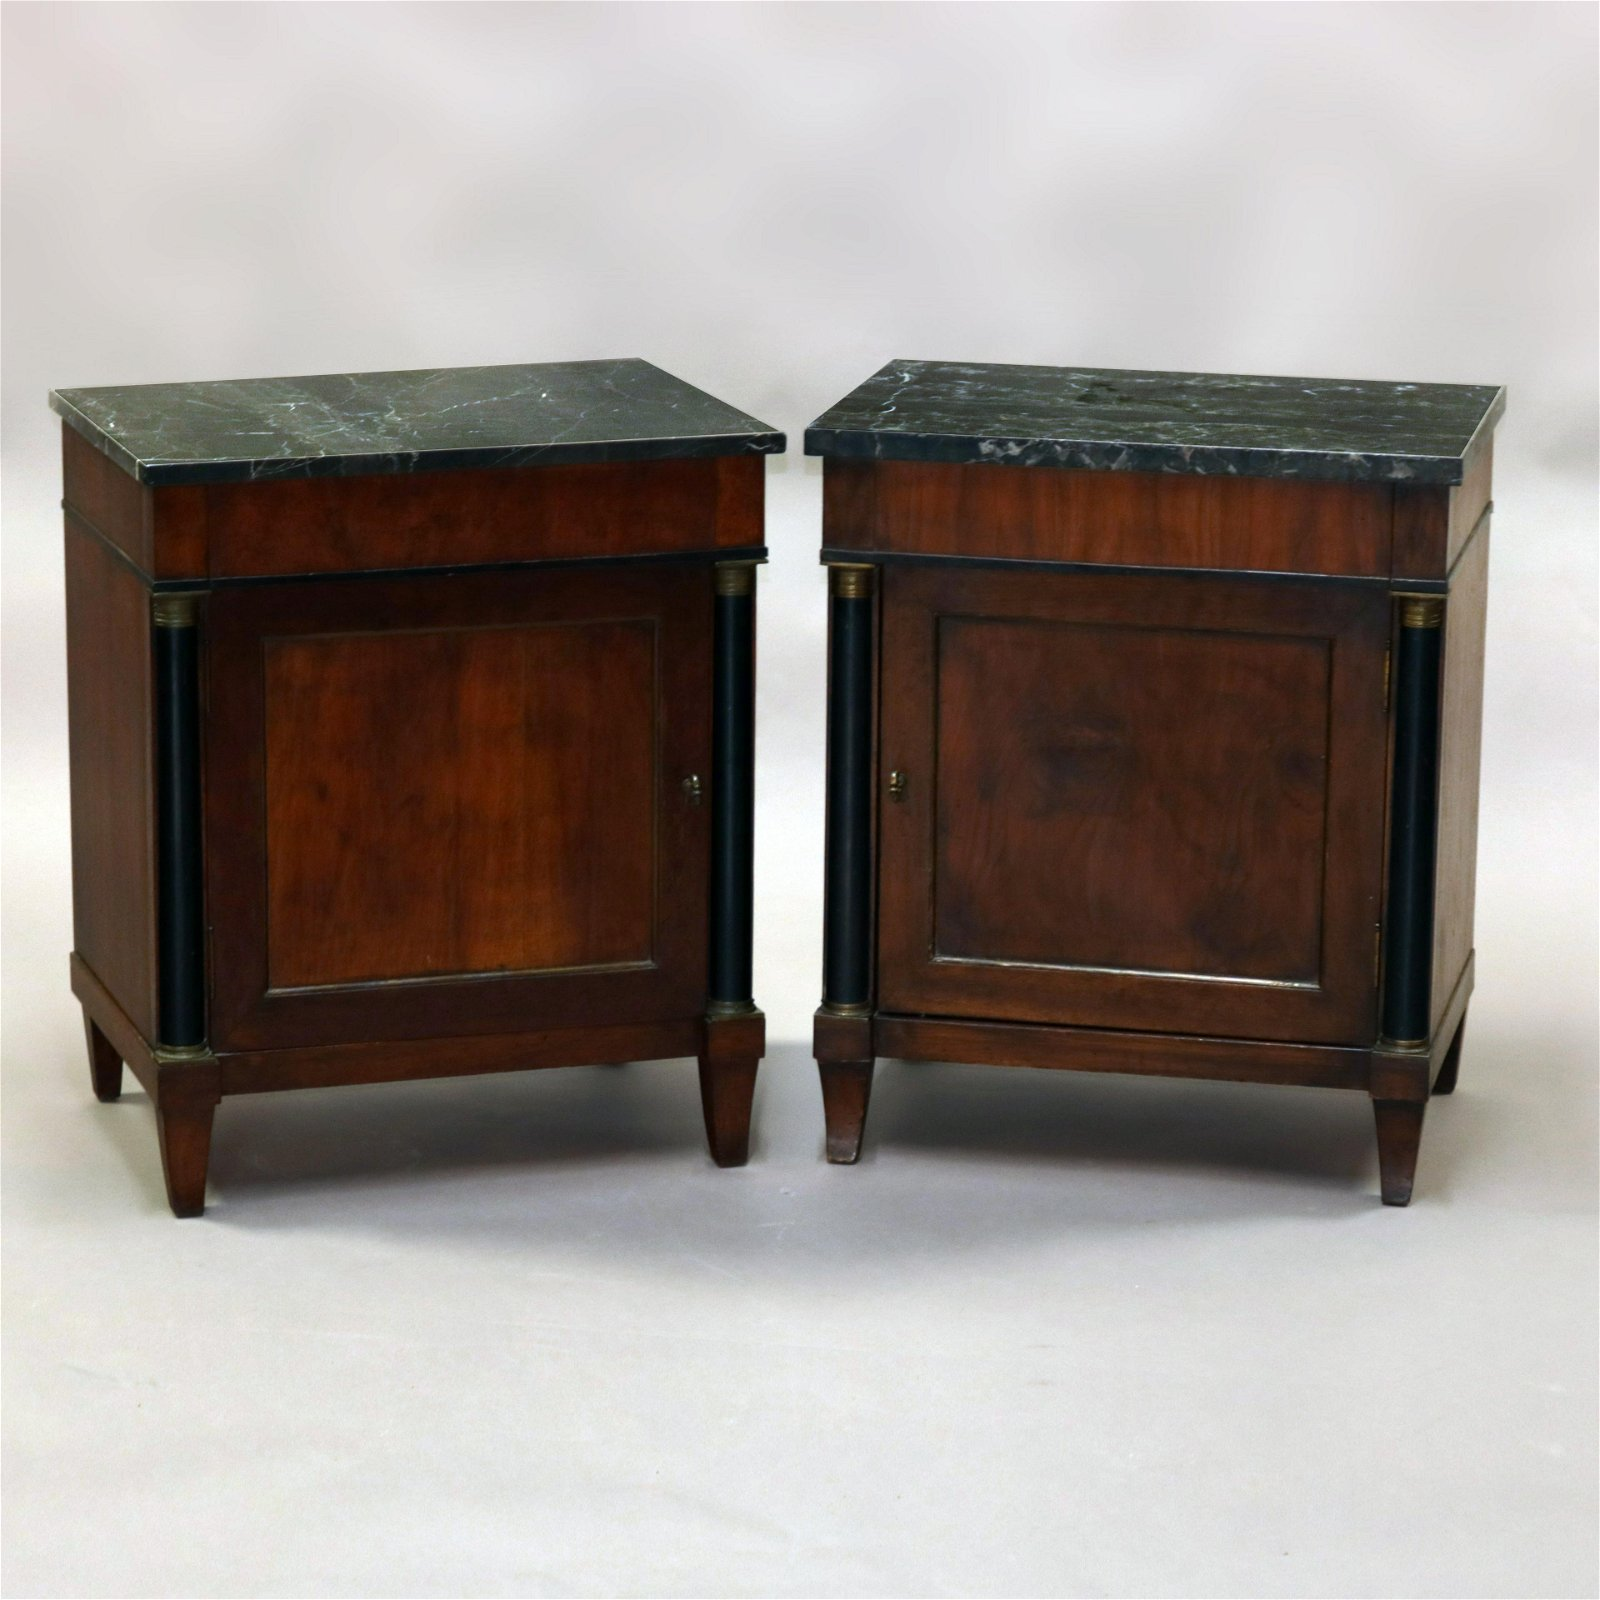 Pair of Antique French Empire Mahogany and Marble Side